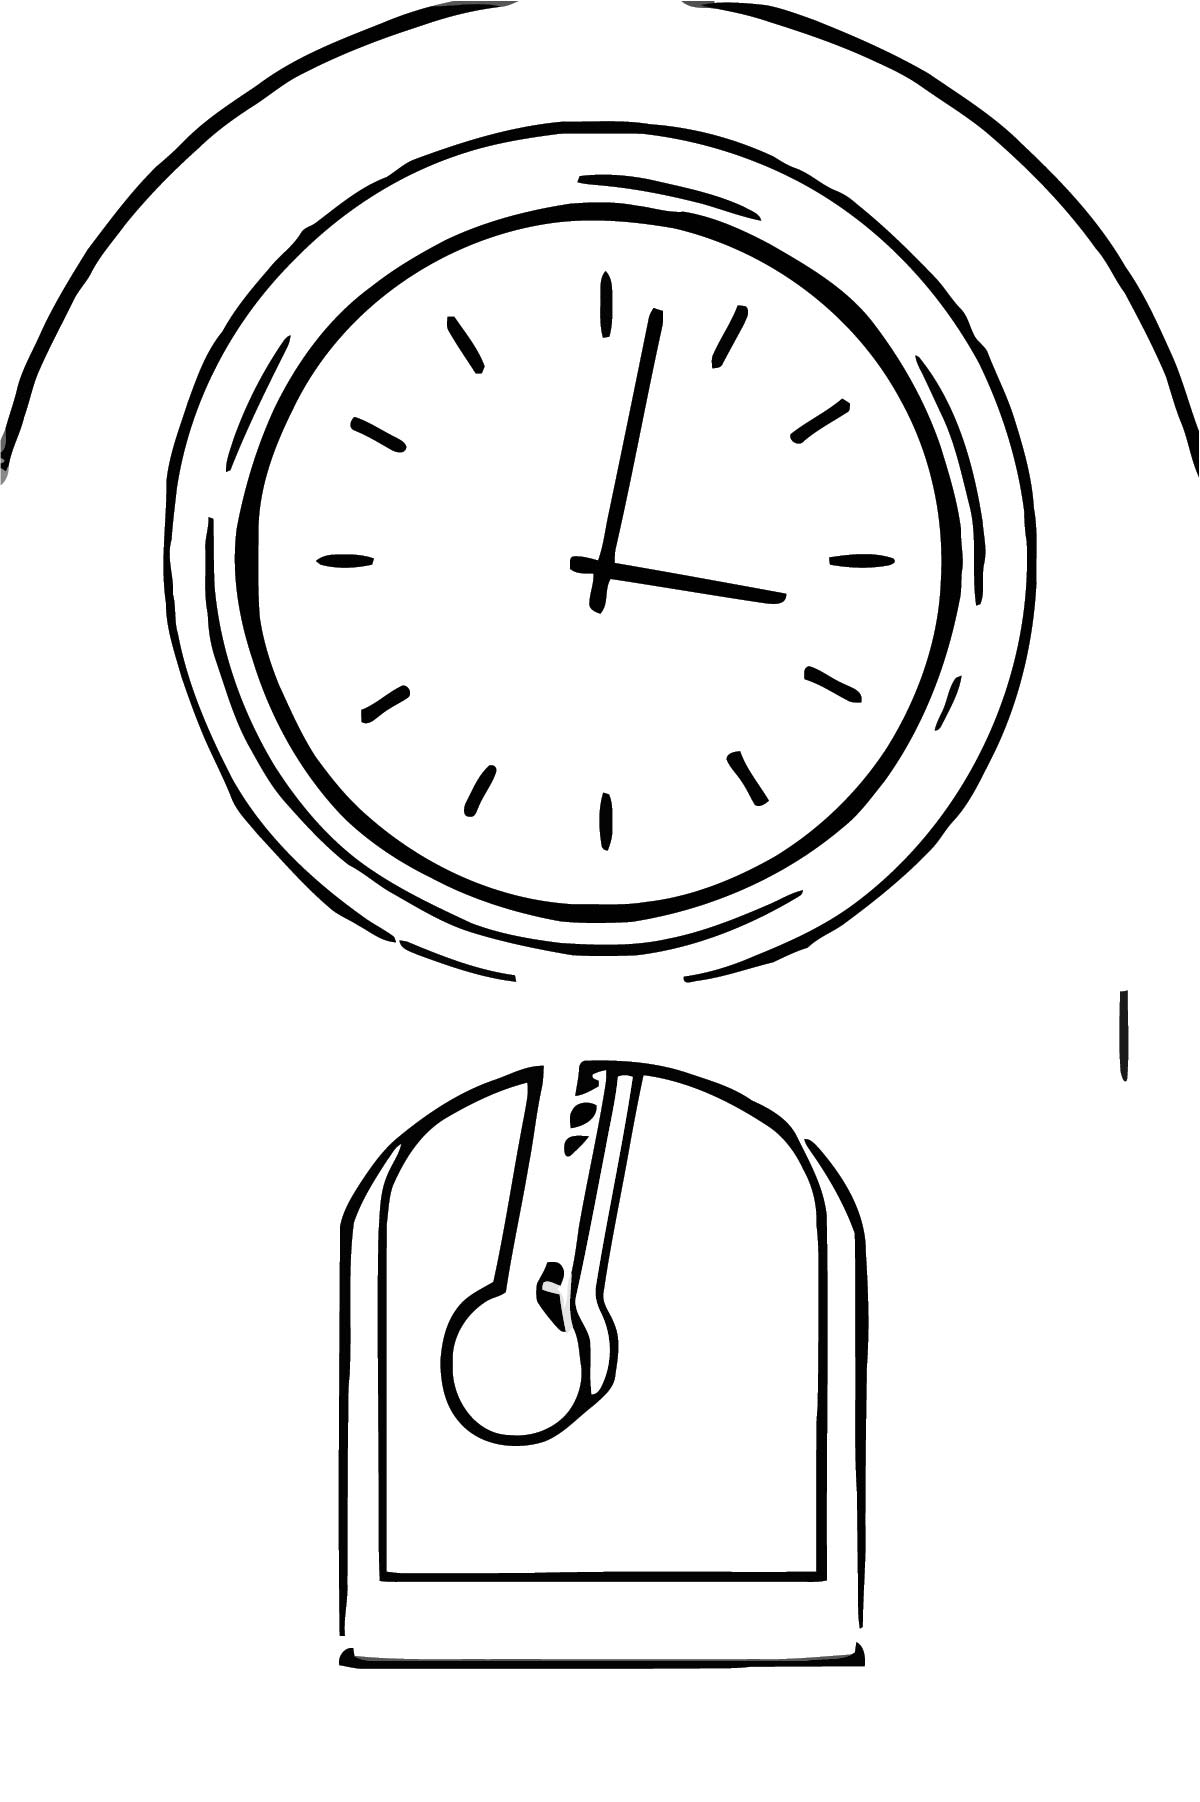 Clock Clipart Eten Free Printable Ar Cartoonized Free Printable Coloring Page